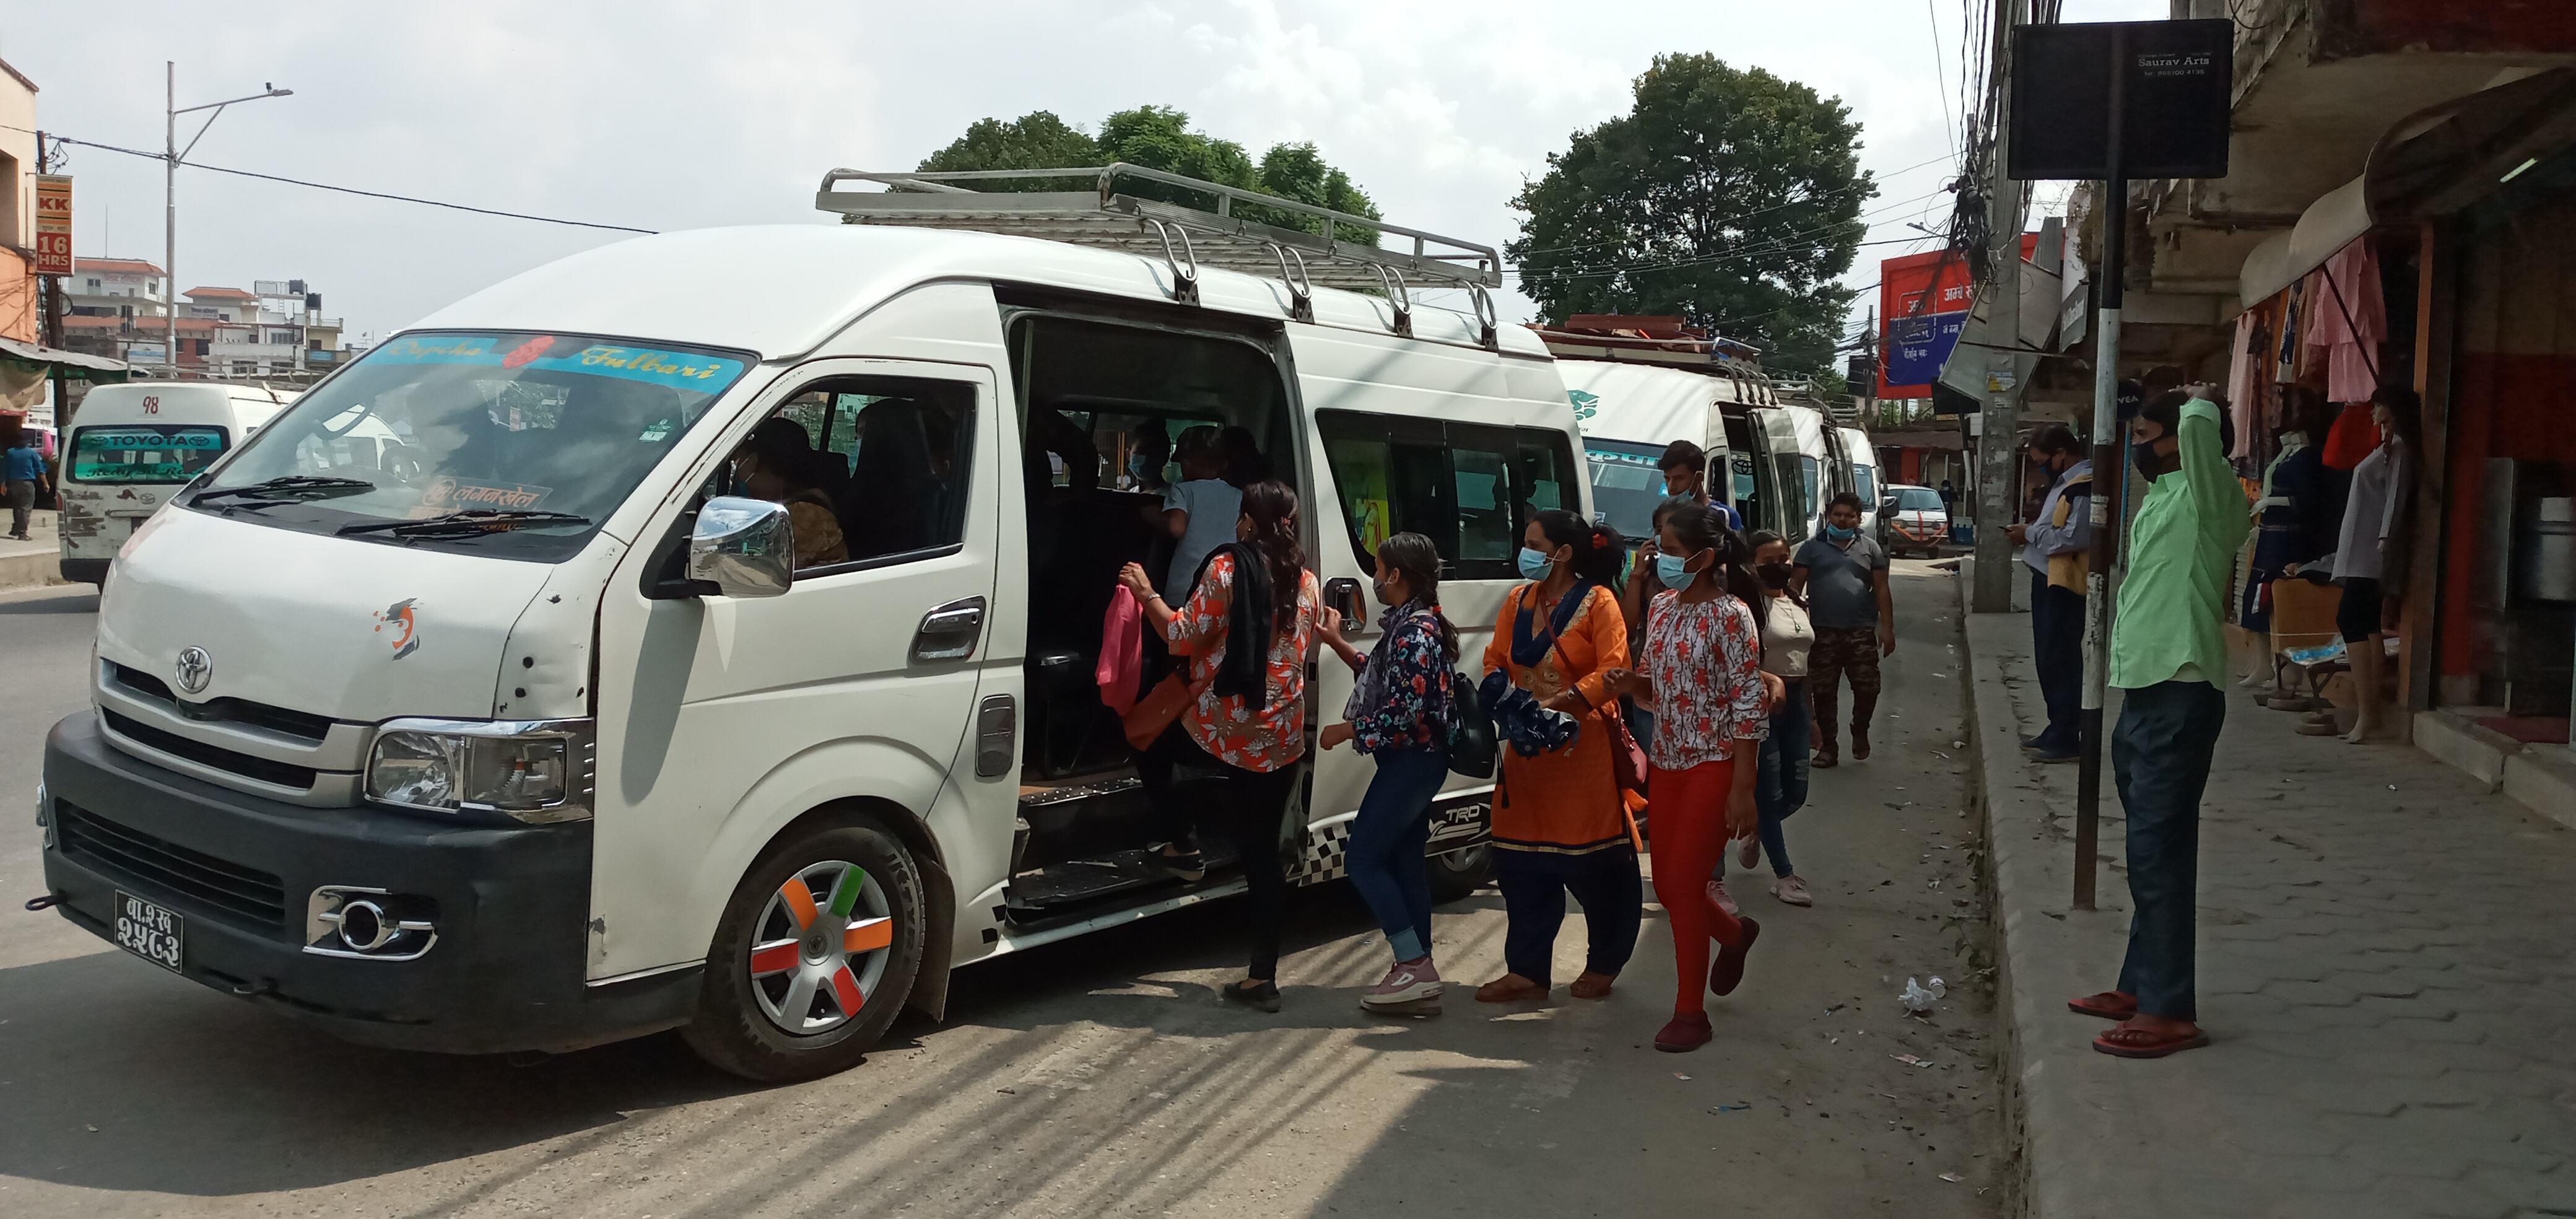 Daily commuters board a microbus in Lagankhel, Lalitpur, on Thursday. Photo: BalKrishna Thapa/THT